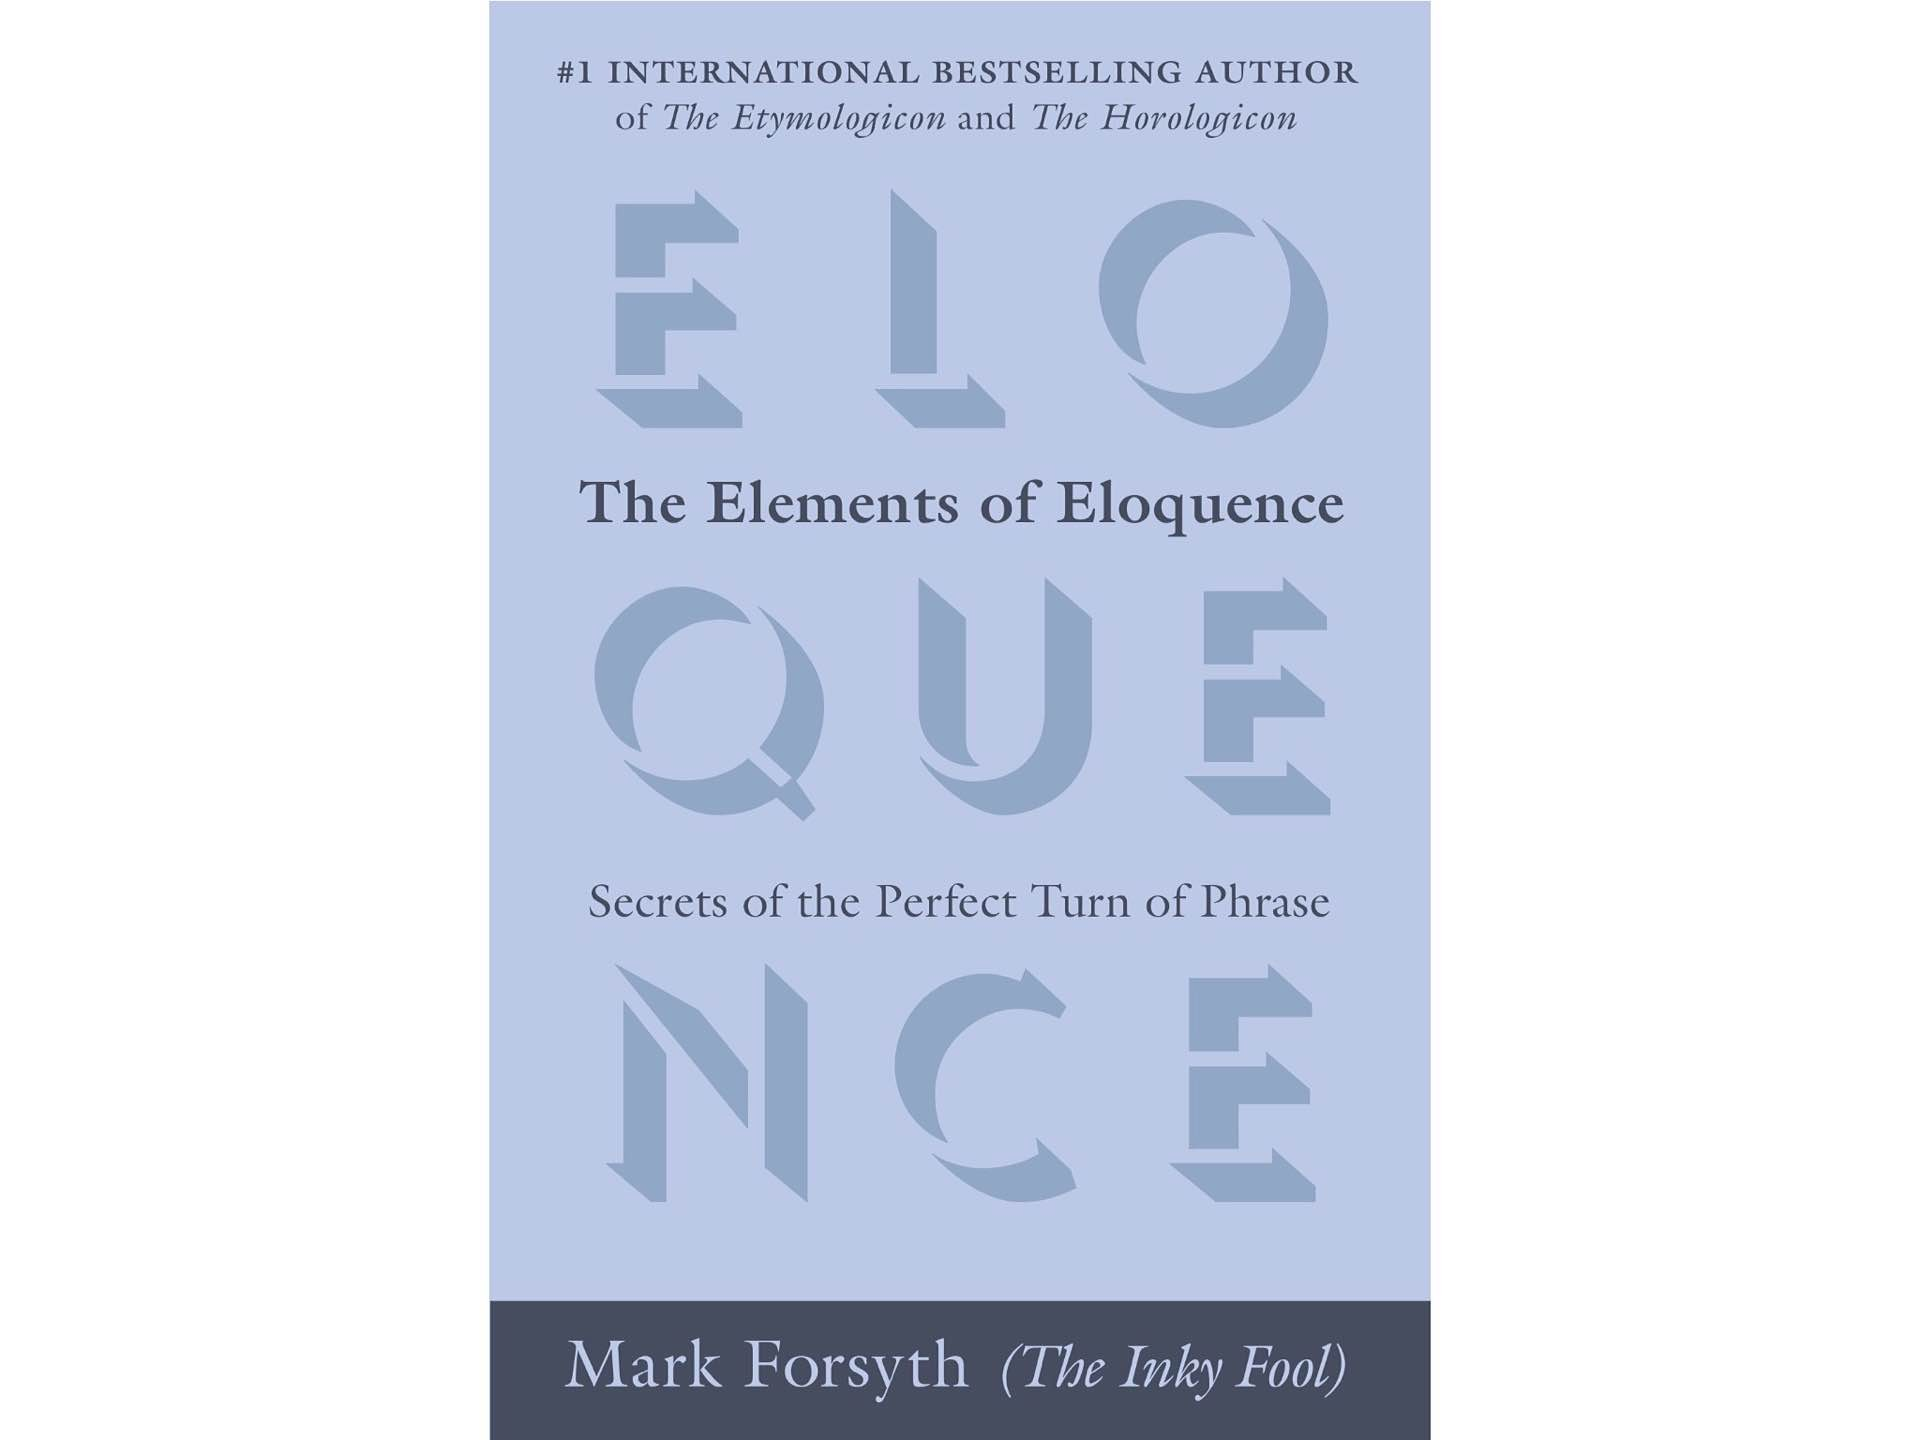 The Elements of Eloquence by Mark Forsyth. ($15 paperback)